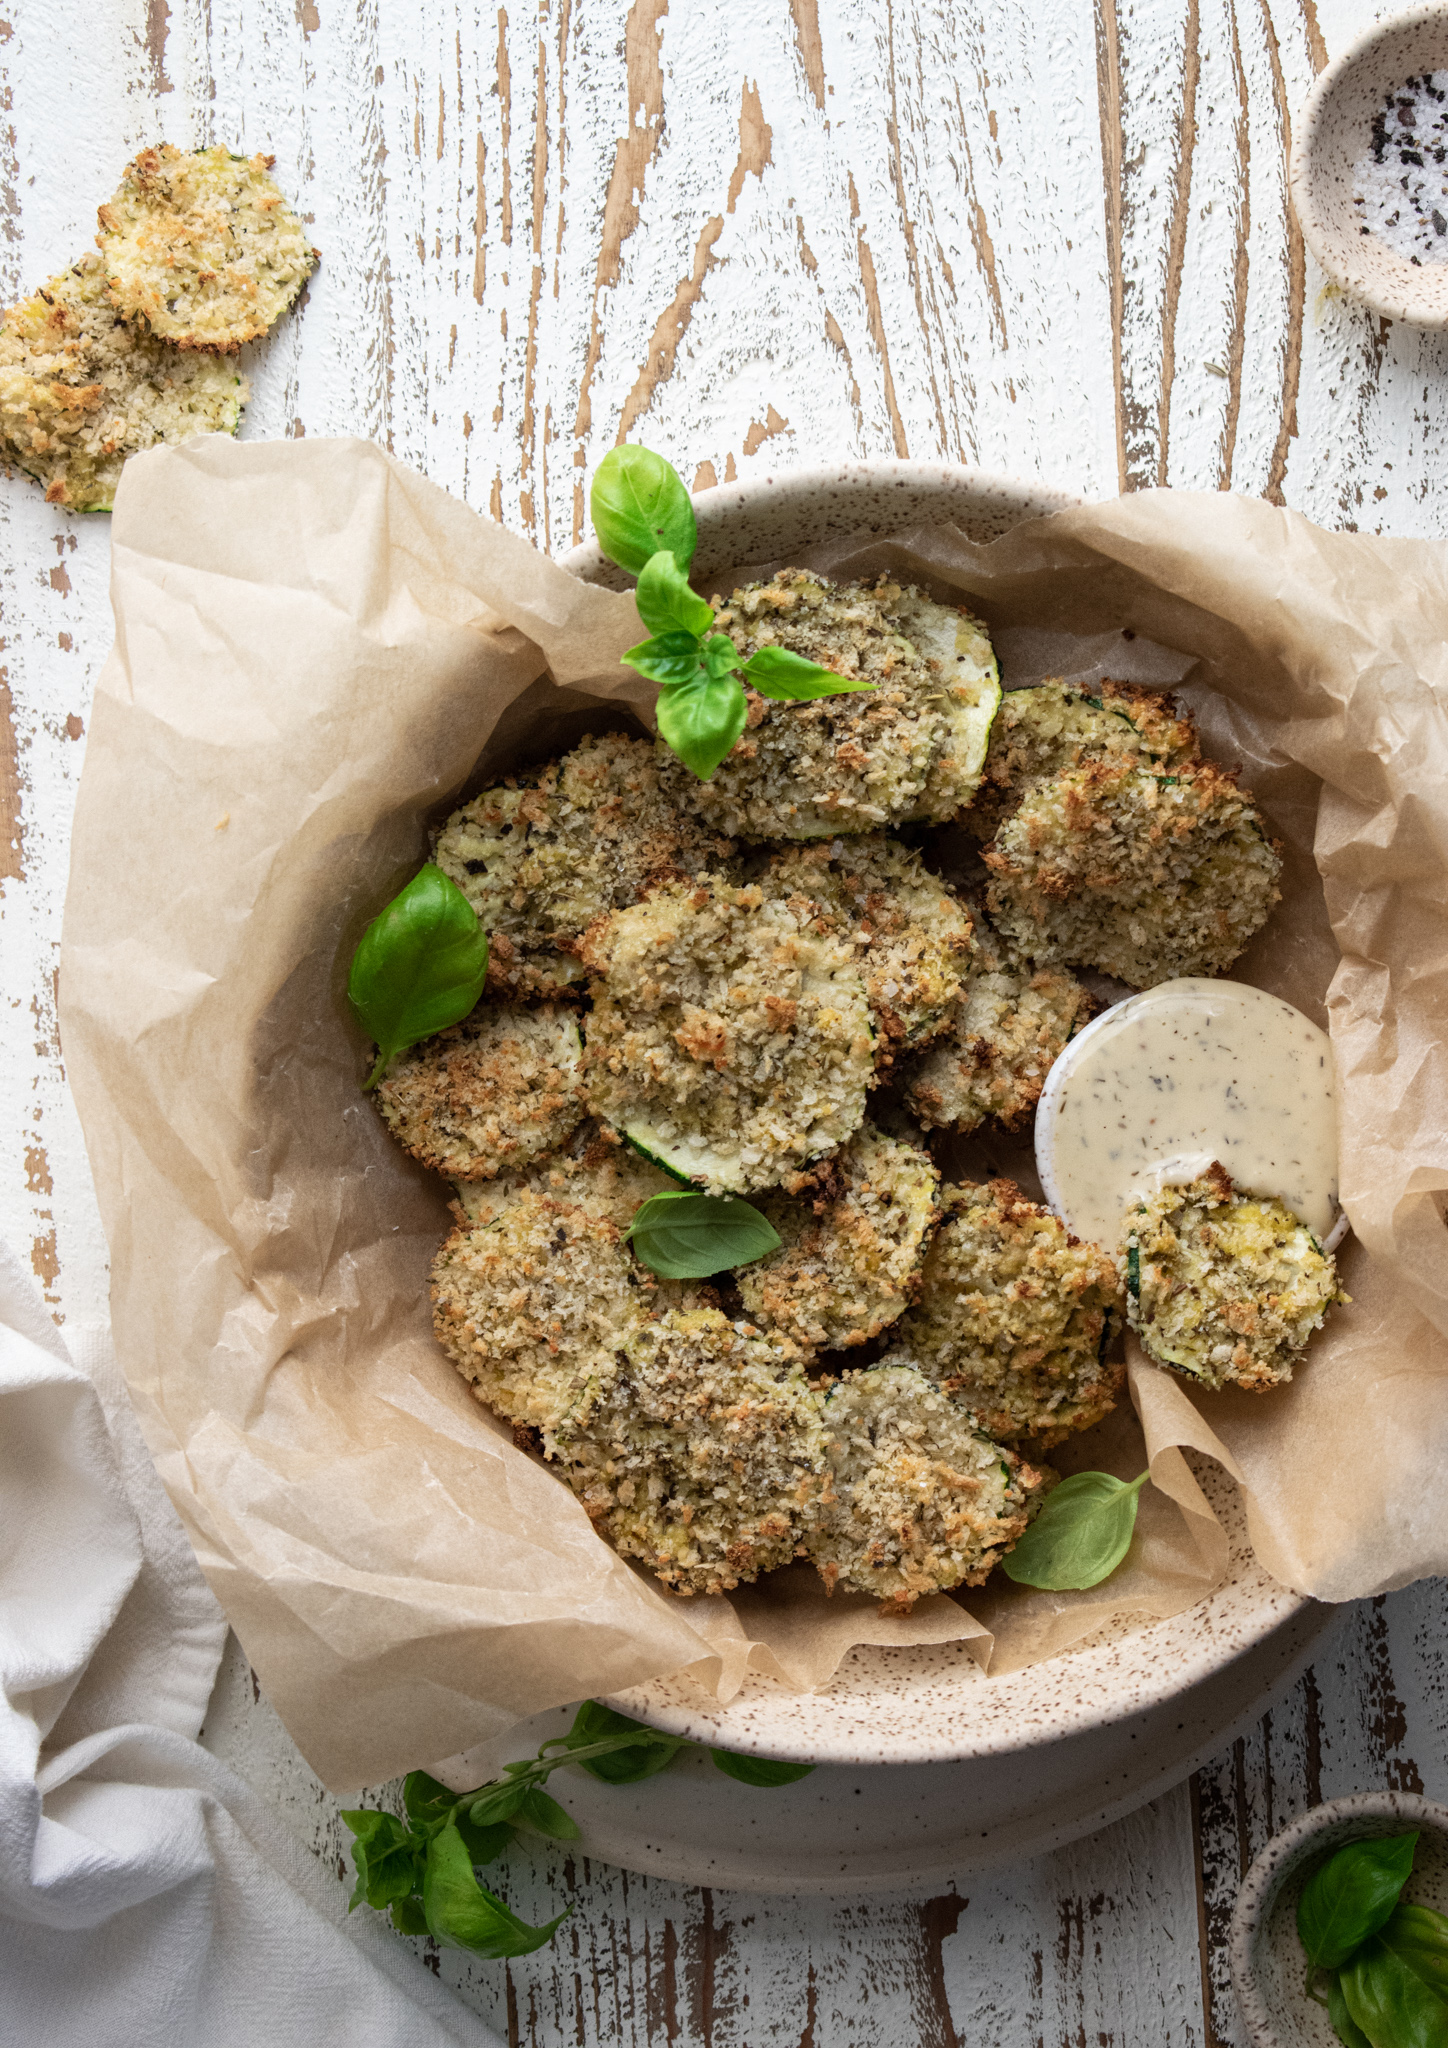 baked zucchini chips in a bowl filled with parchment paper on a wooden white board